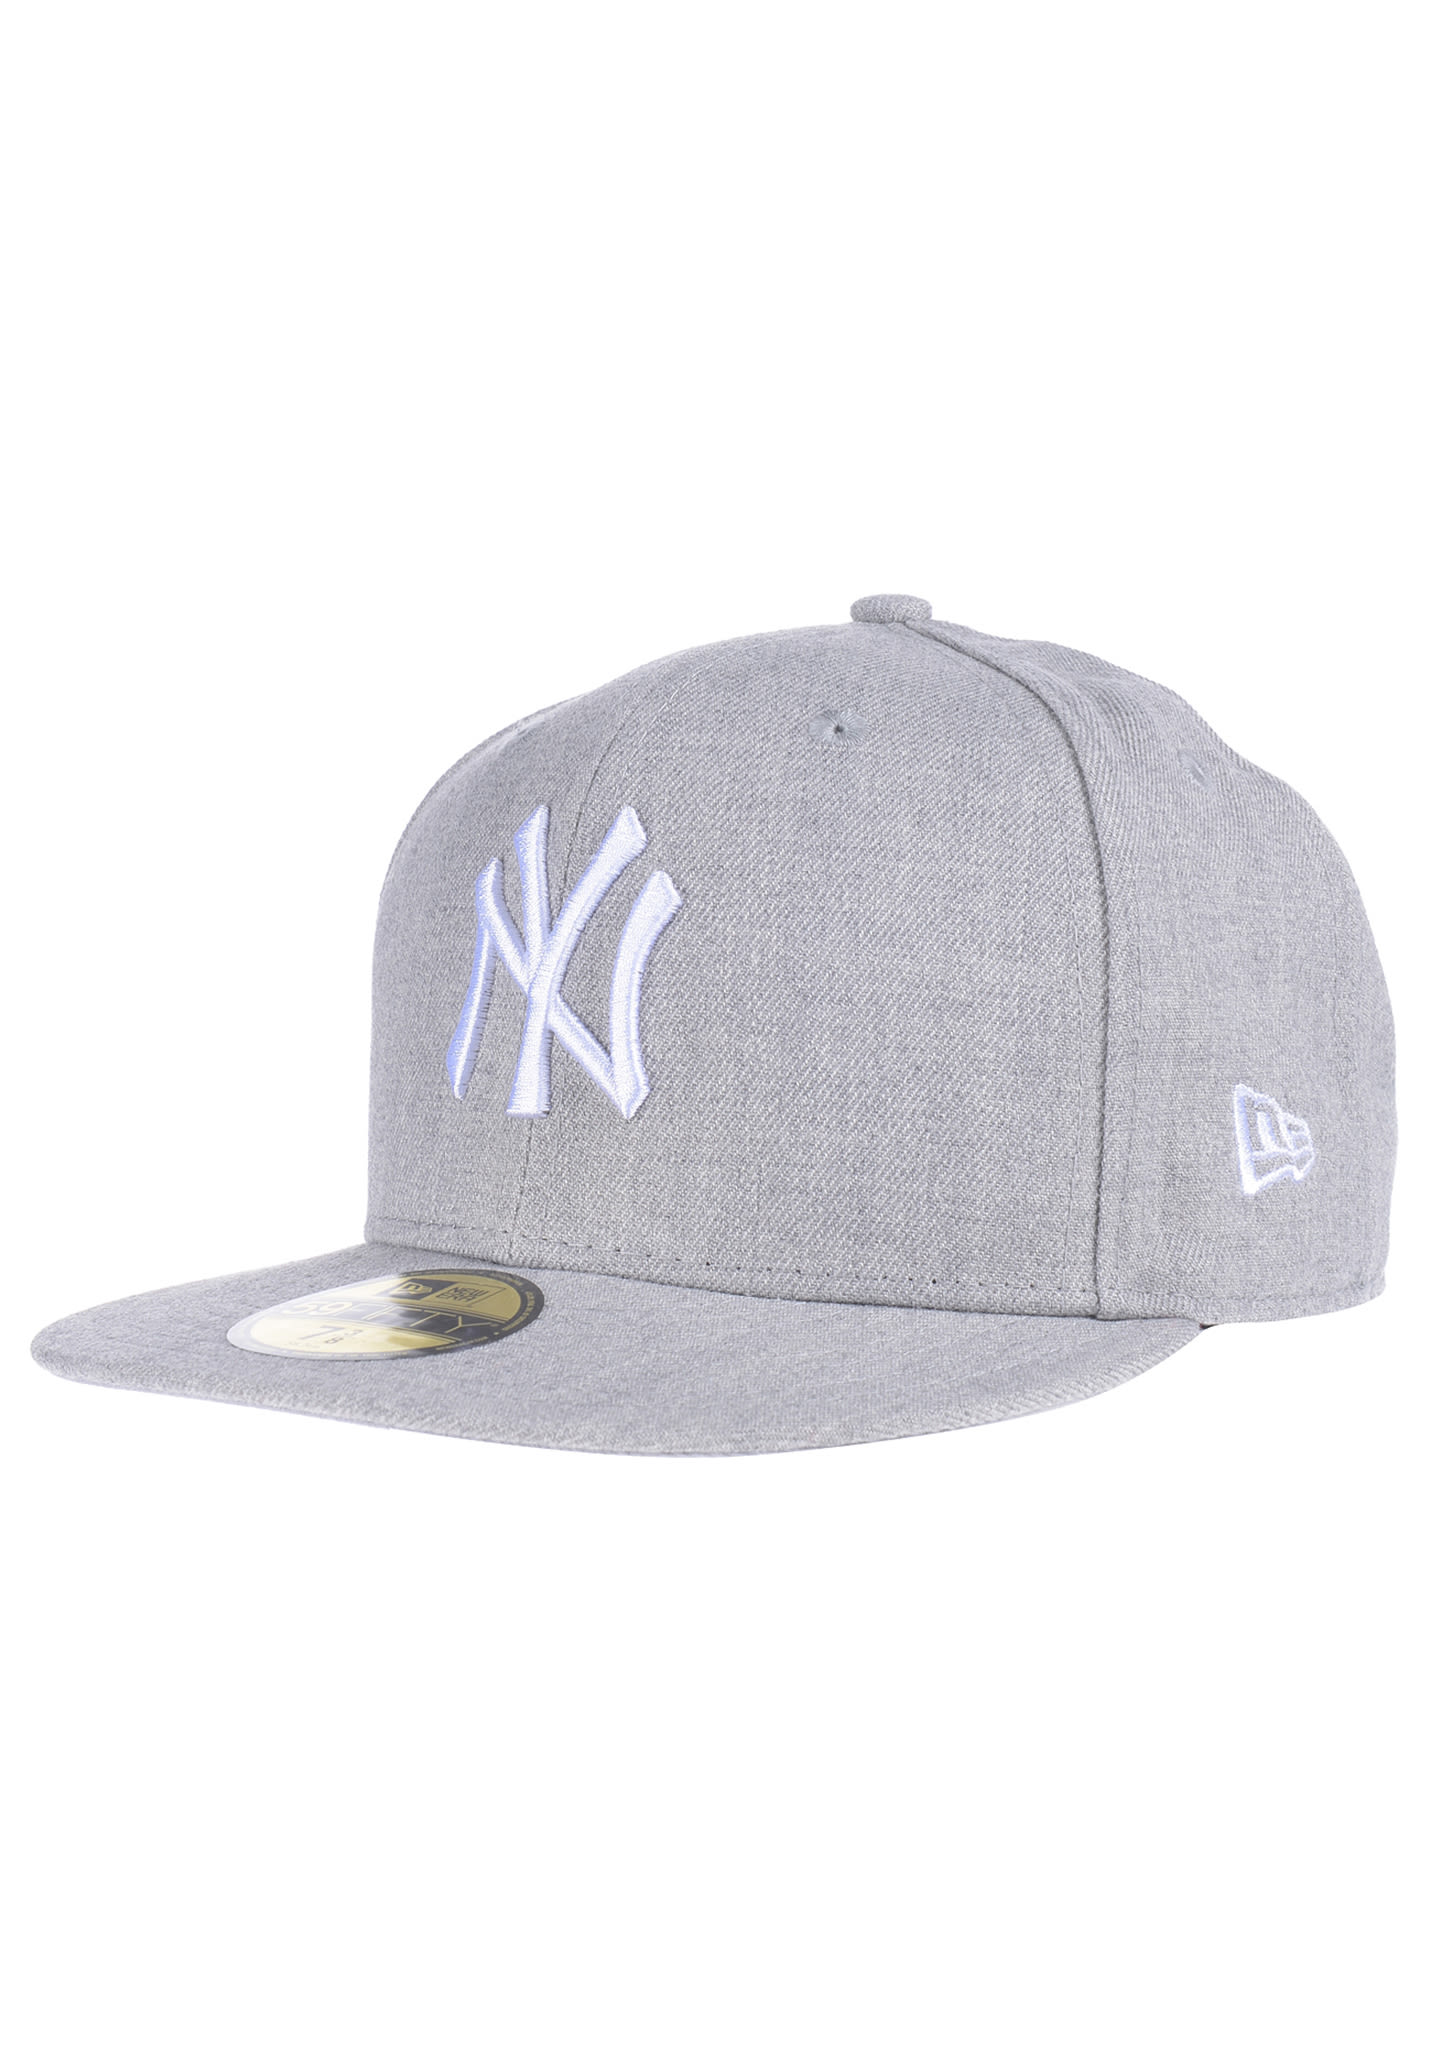 220b3cc8822 NEW Era 59Fifty New York Yankees - Fitted Cap - Grey - Planet Sports